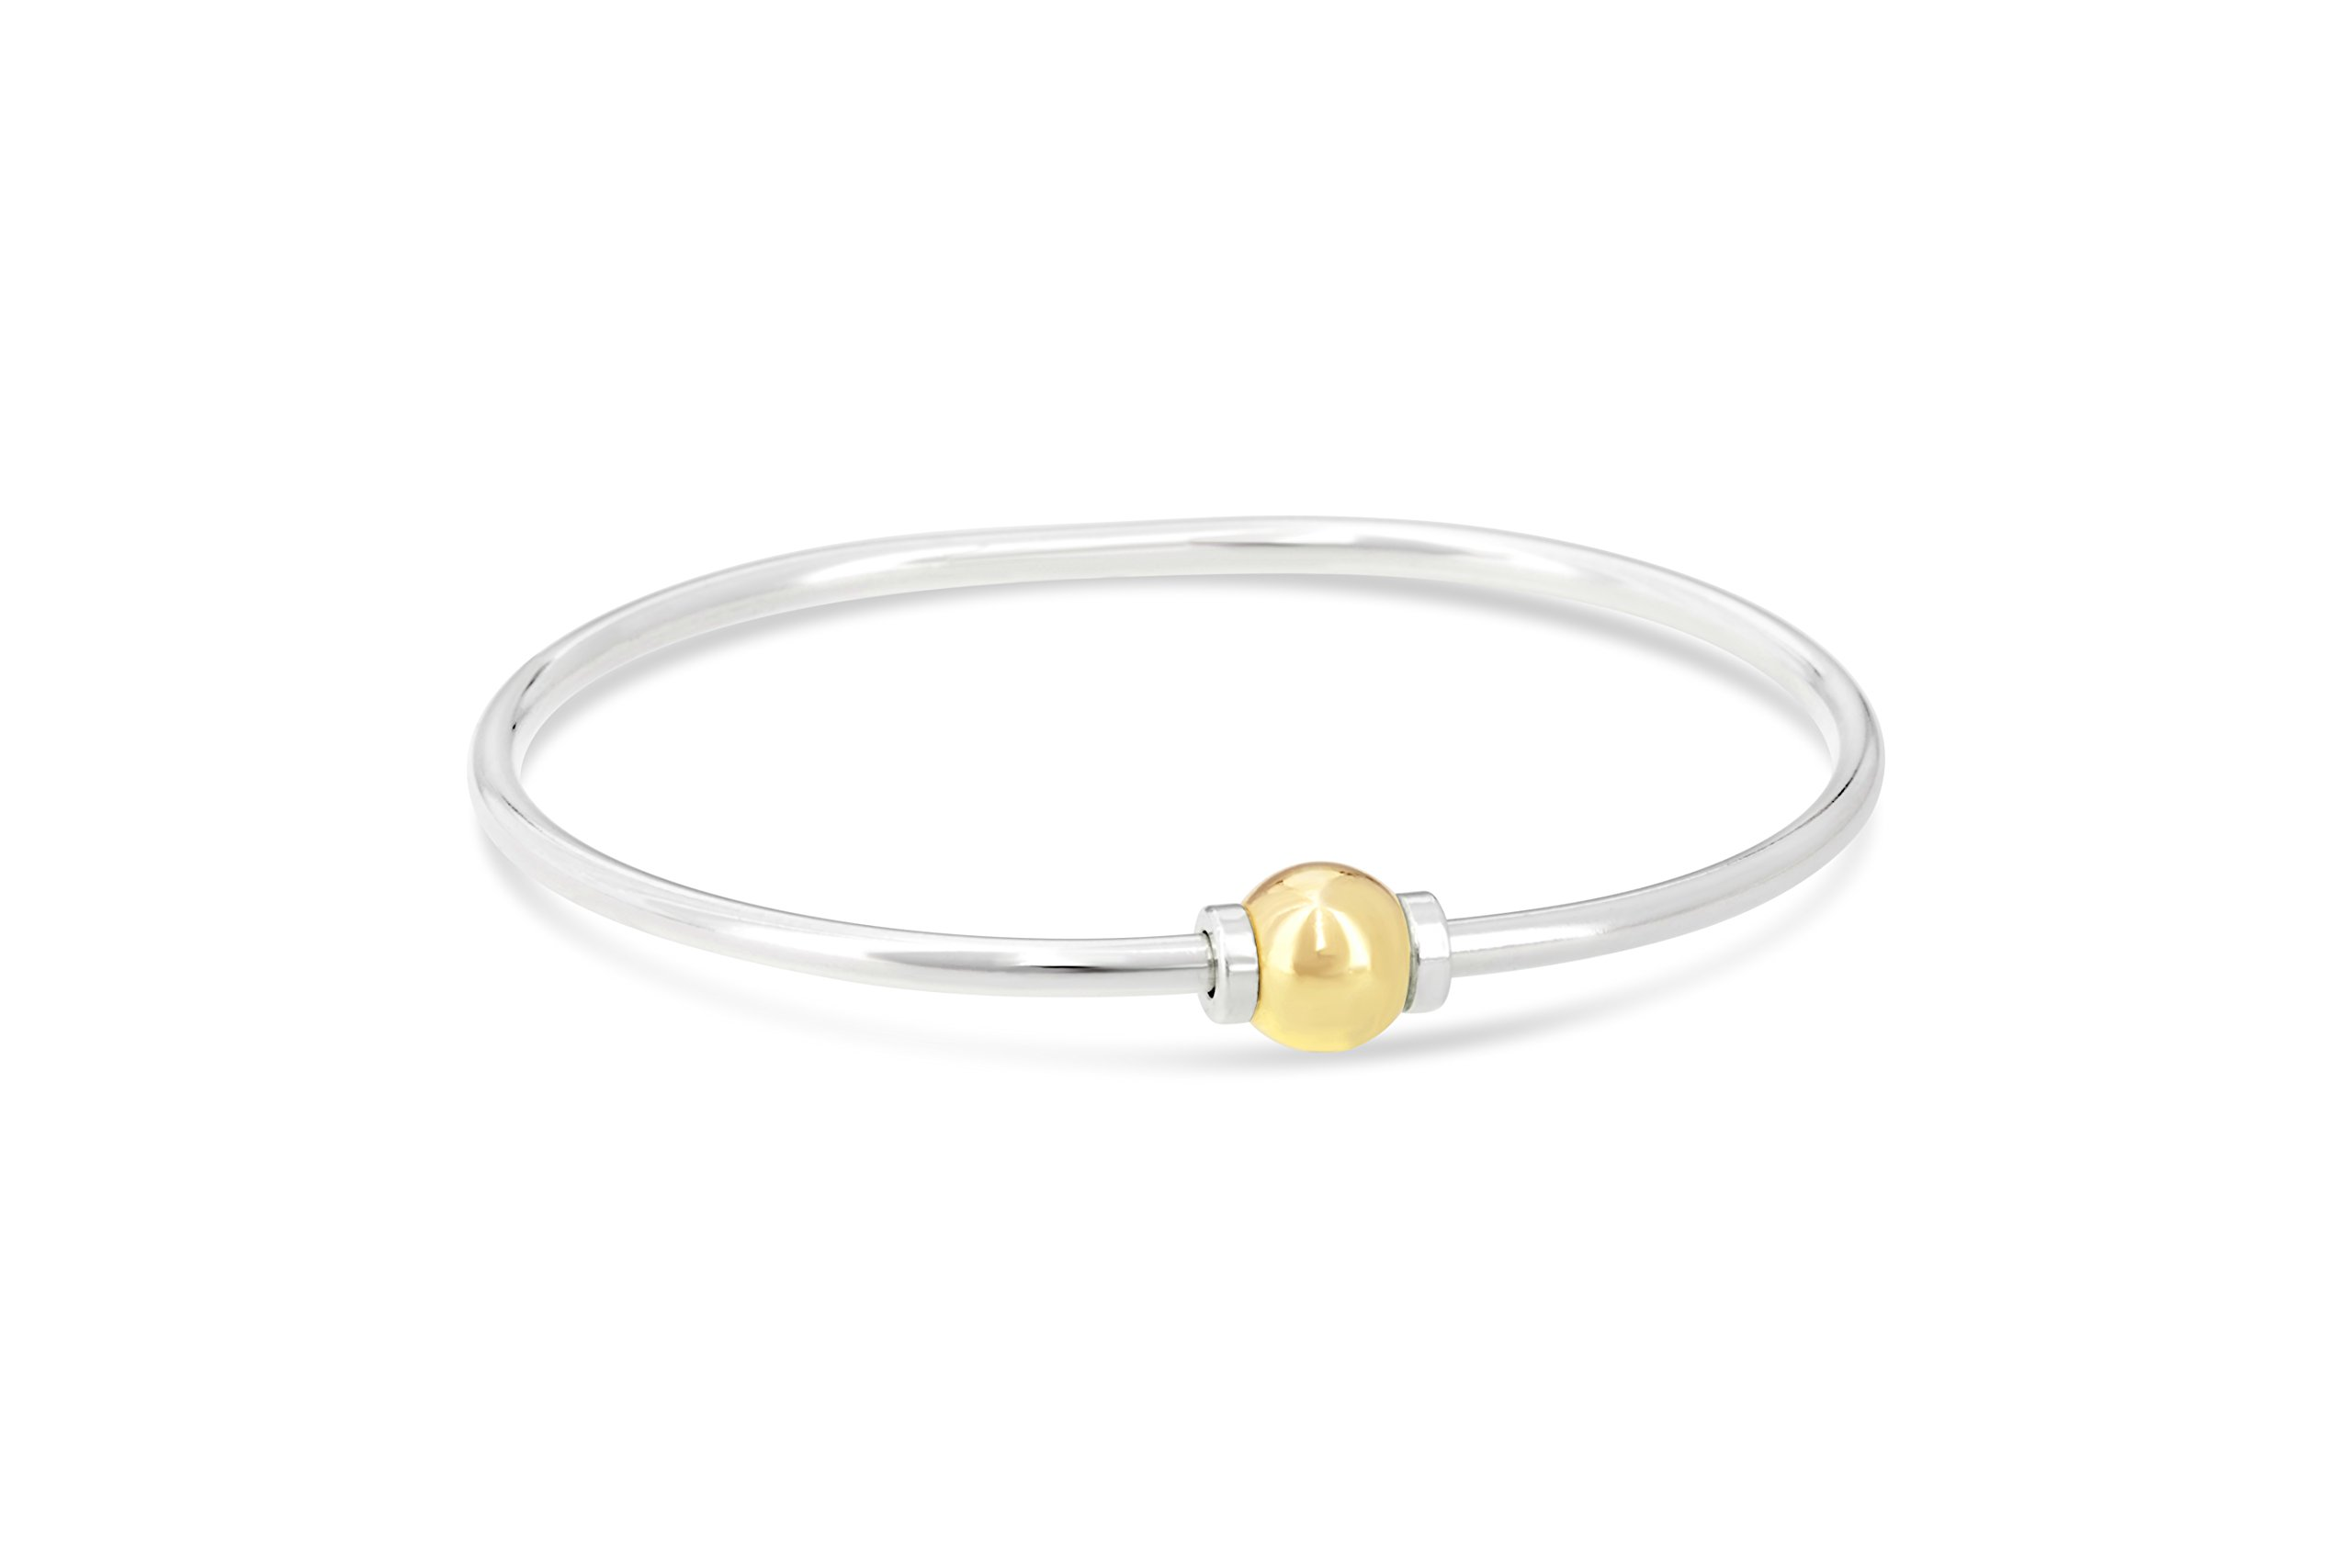 The Beach Ball Bracelet From Cape Cod 925 sterling silver and 14k solid gold ball (7.5)